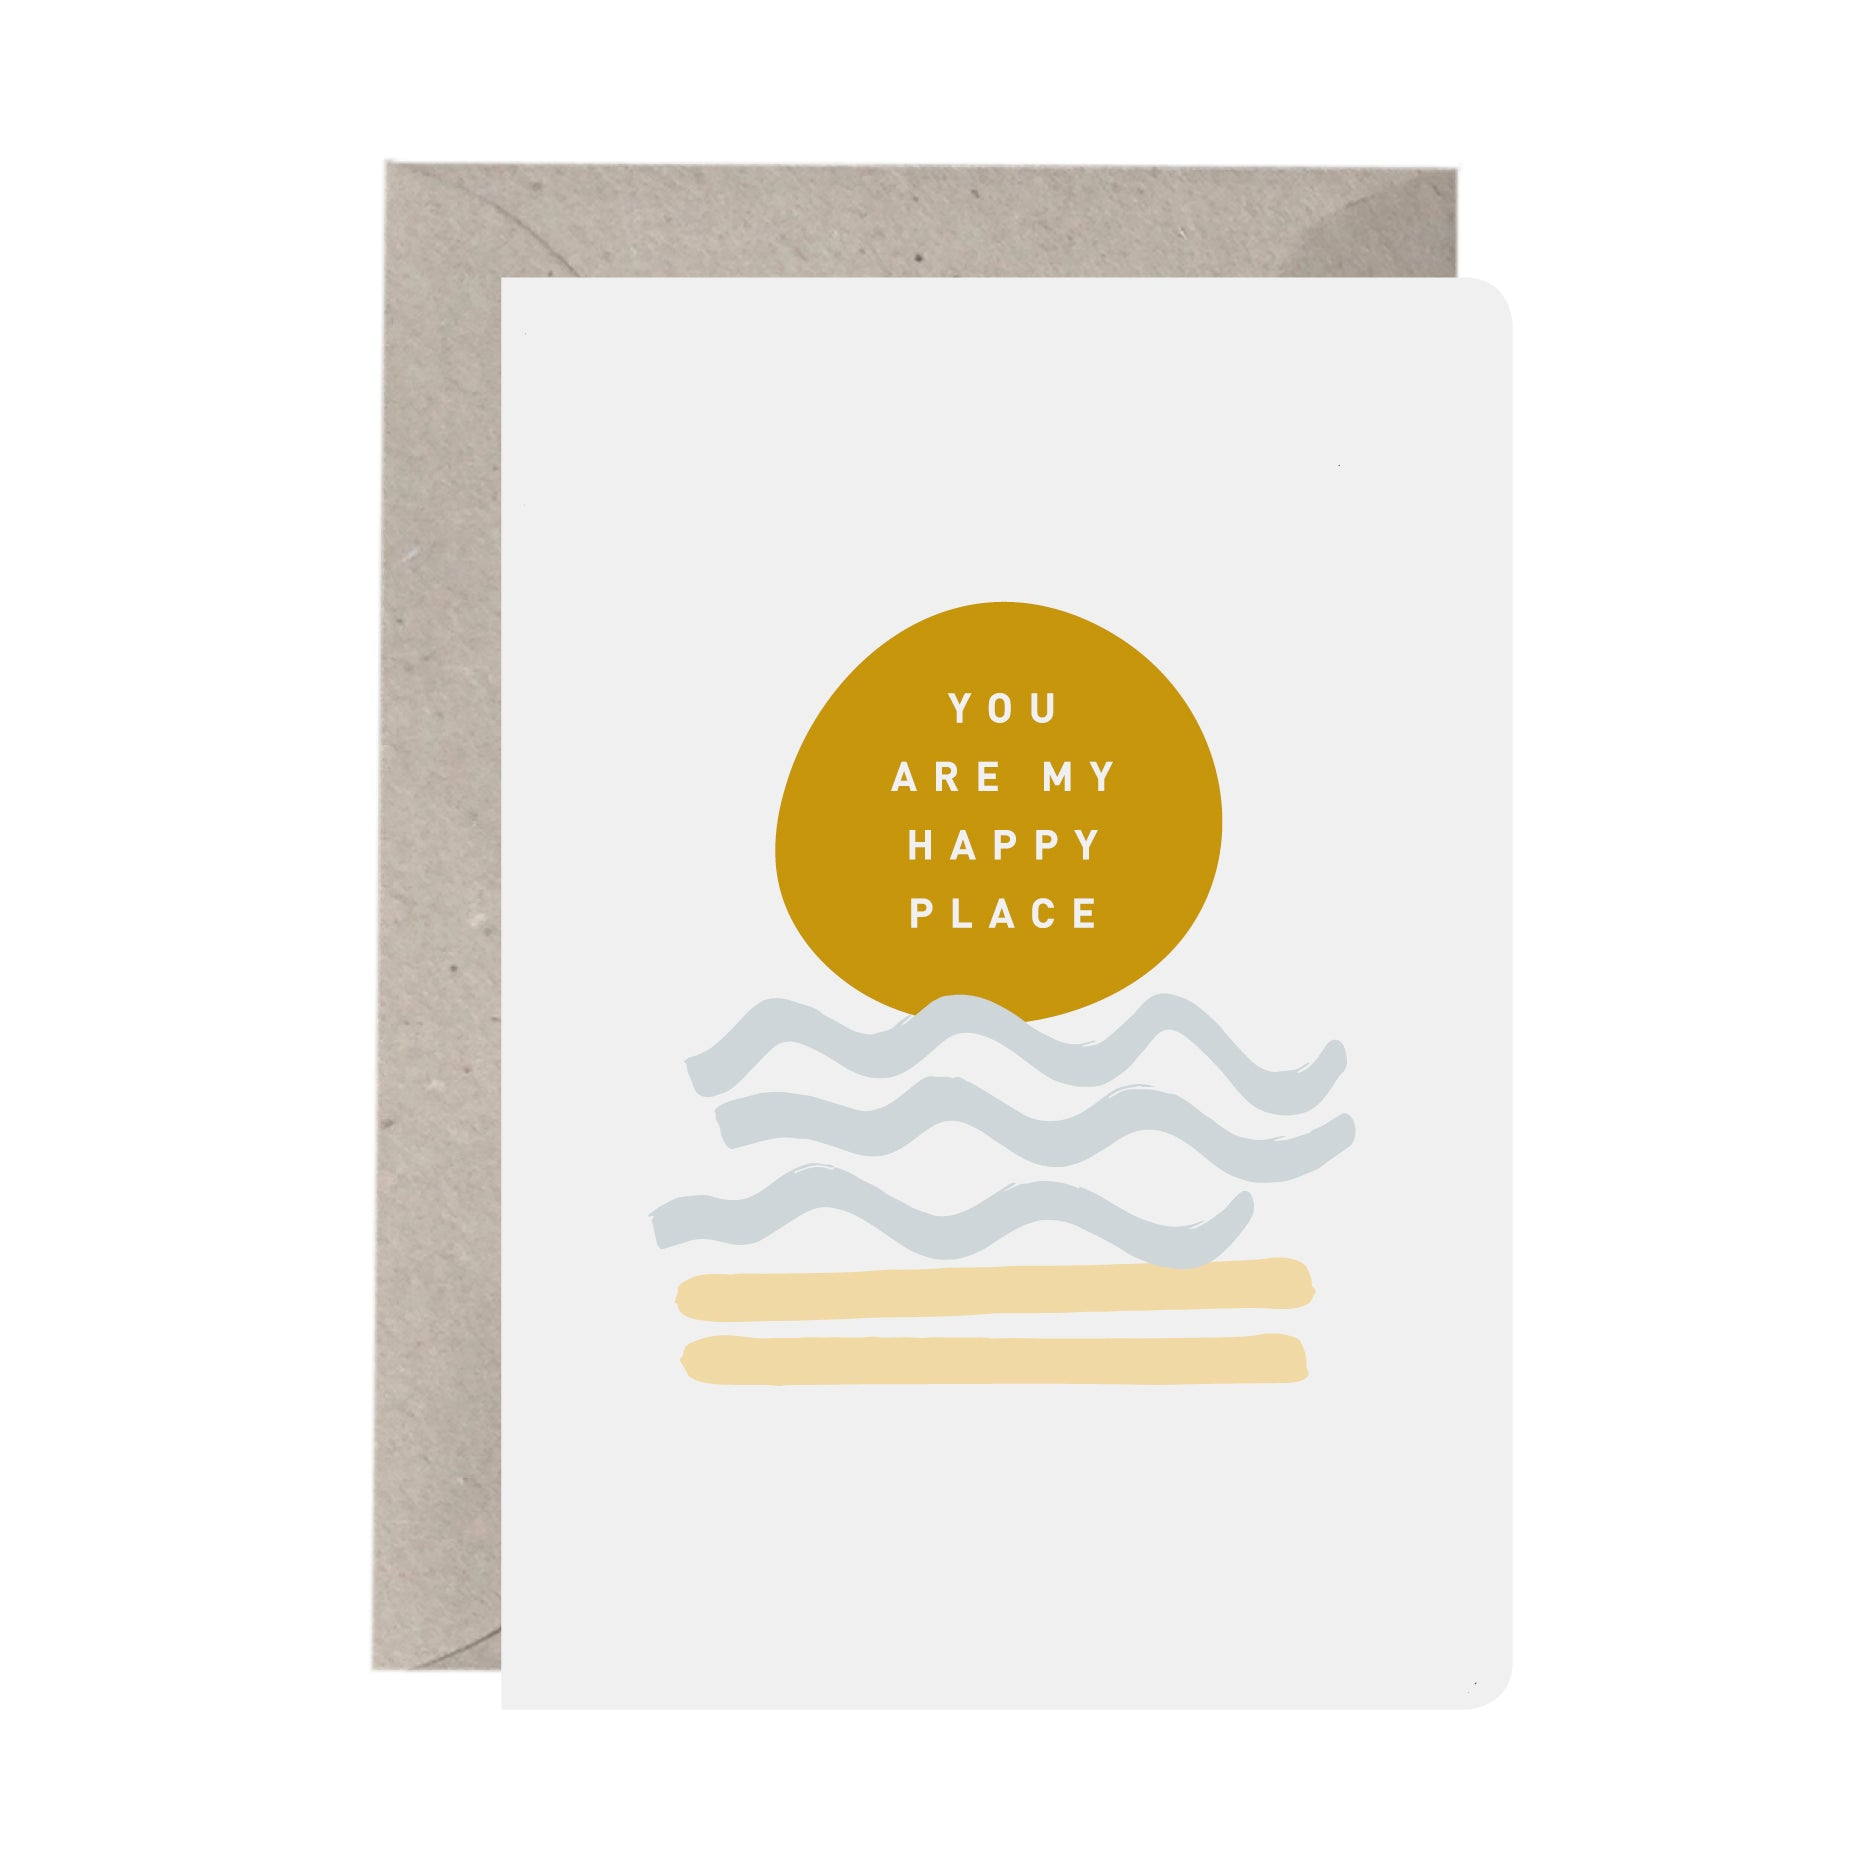 'You Are My Happy Place' Greeting Card